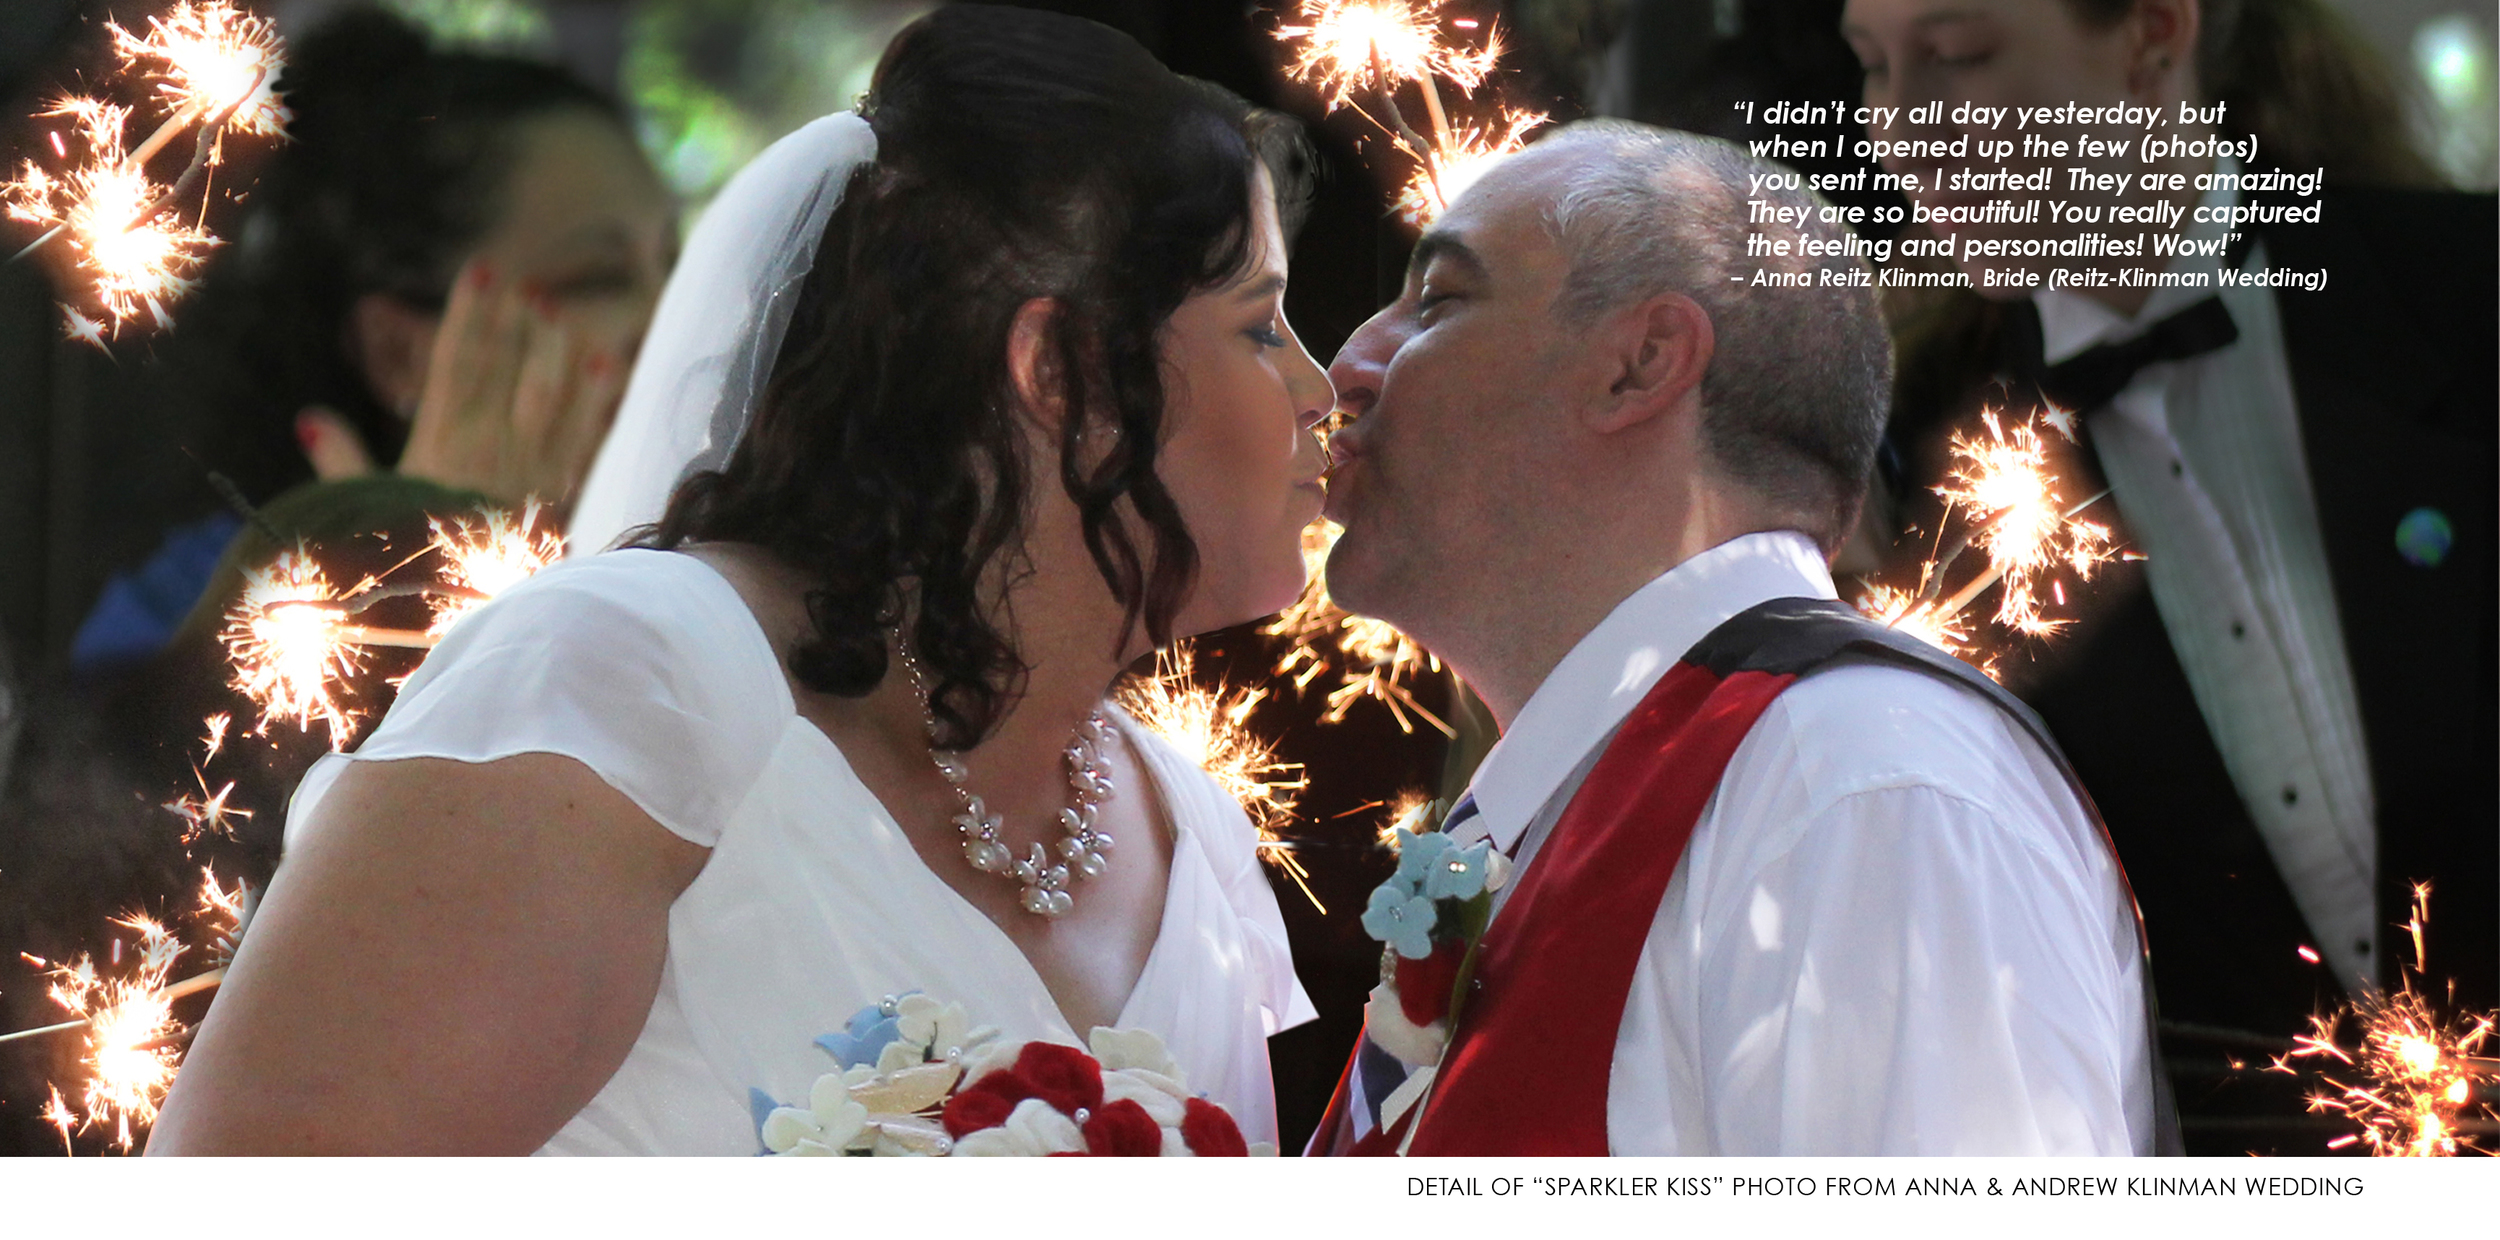 SPARKLER_KISS-PHOTO.jpg